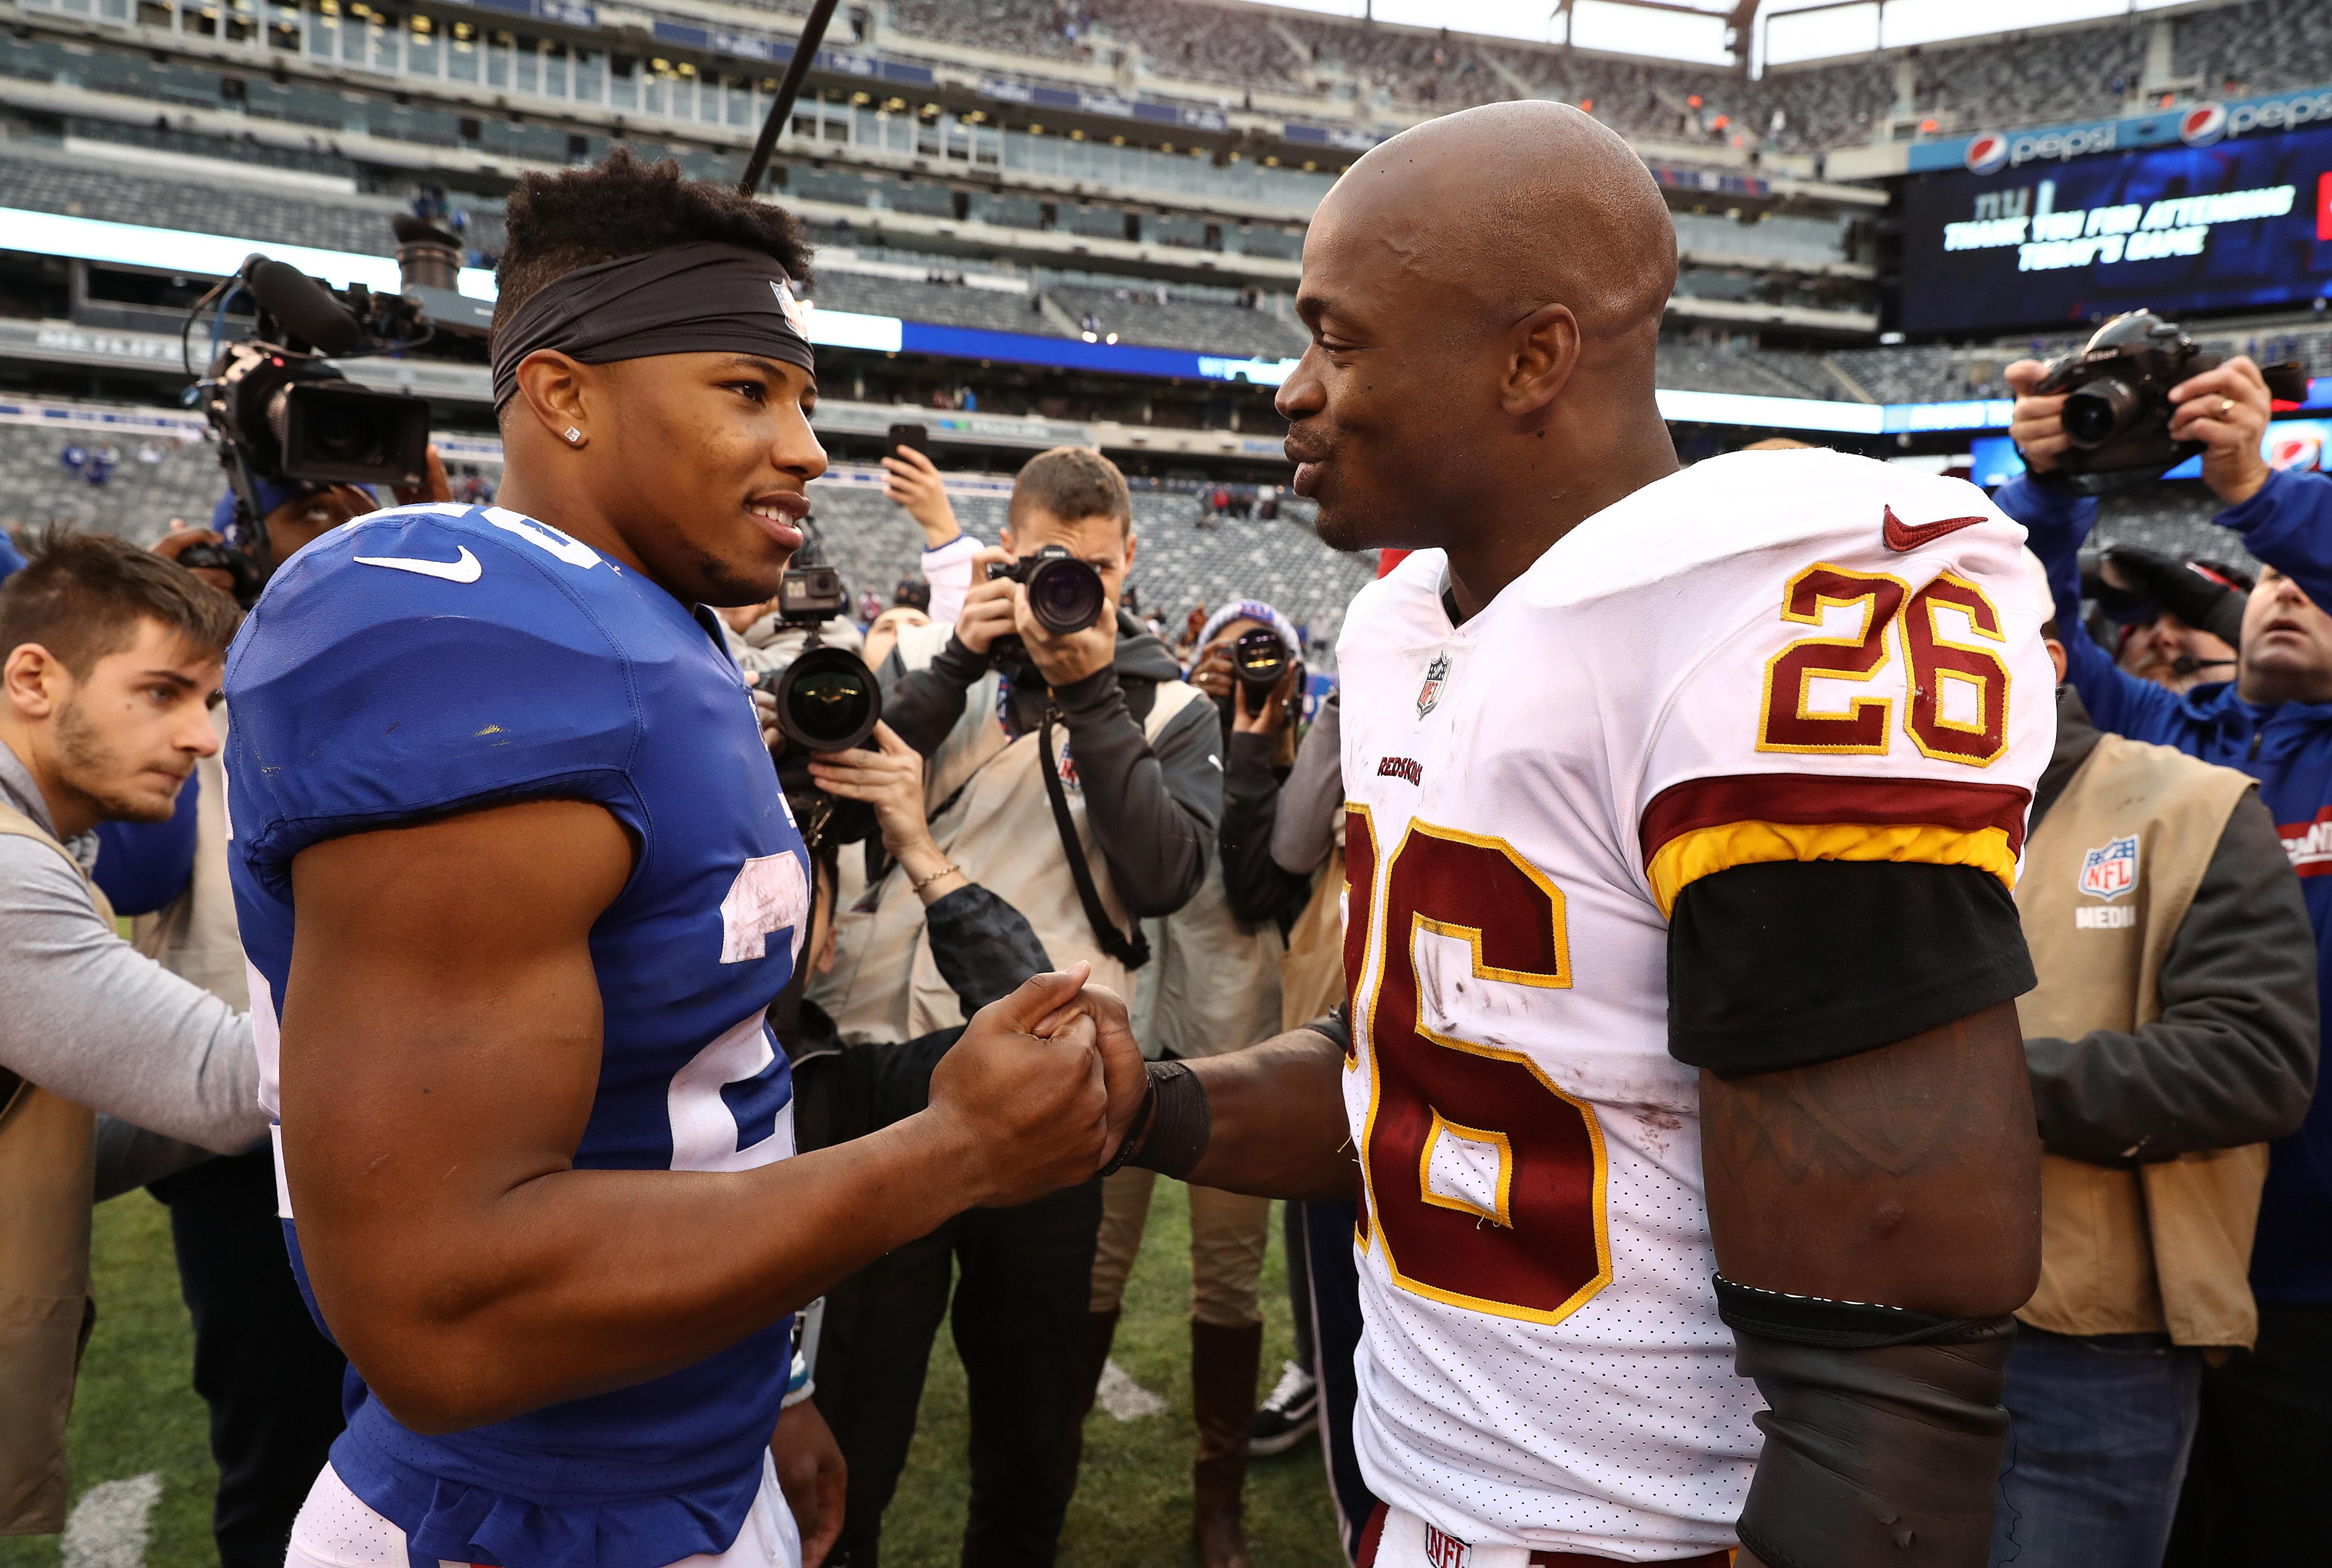 sale retailer f2737 dd780 Adrian Peterson has high praise, advice for Saquon Barkley